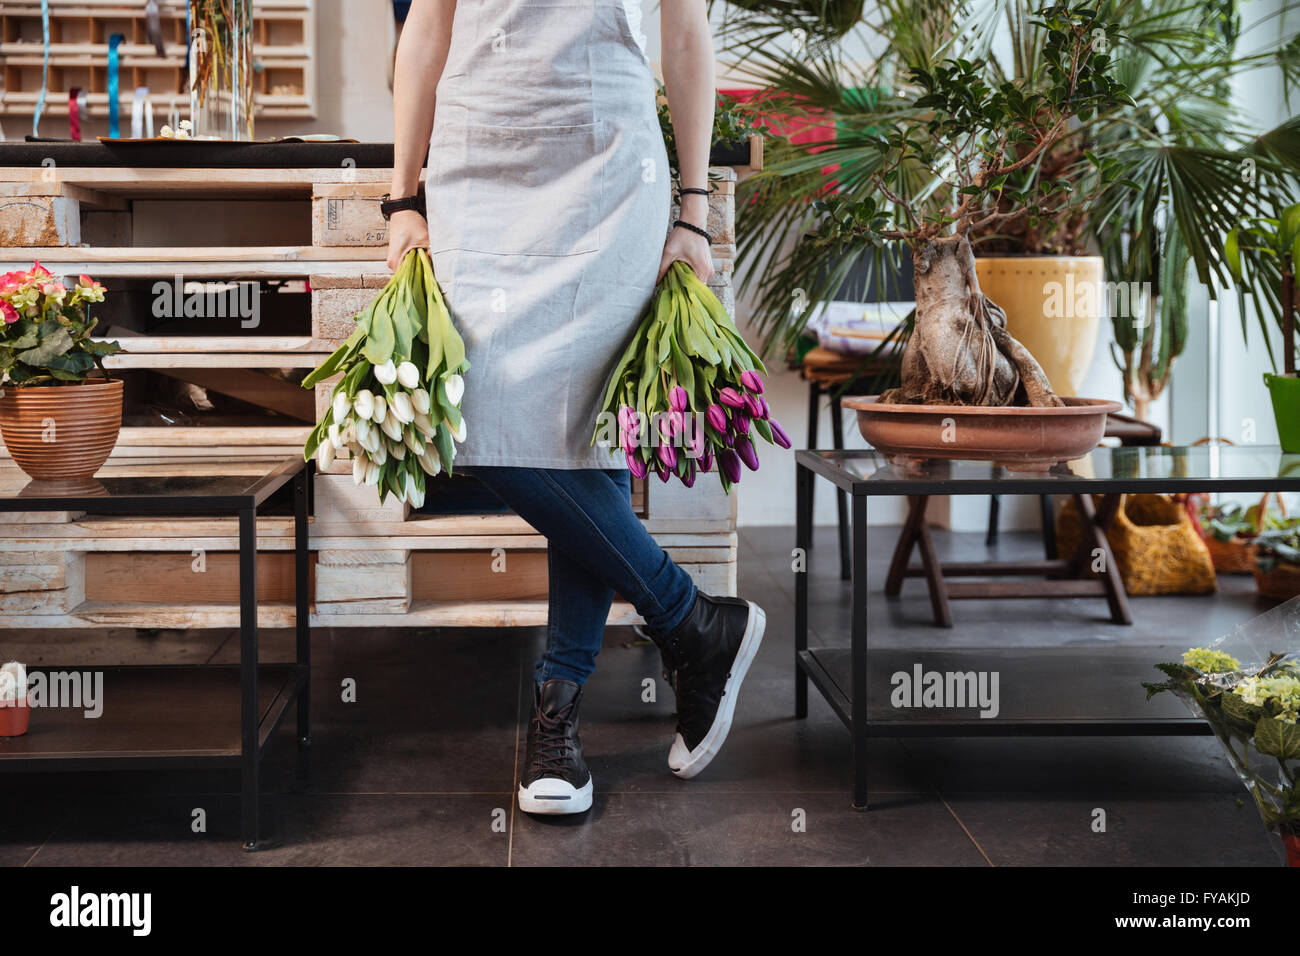 Closeup of young woman florist in apron and sneakers with two bouquets of tulips standing in flower shop - Stock Image